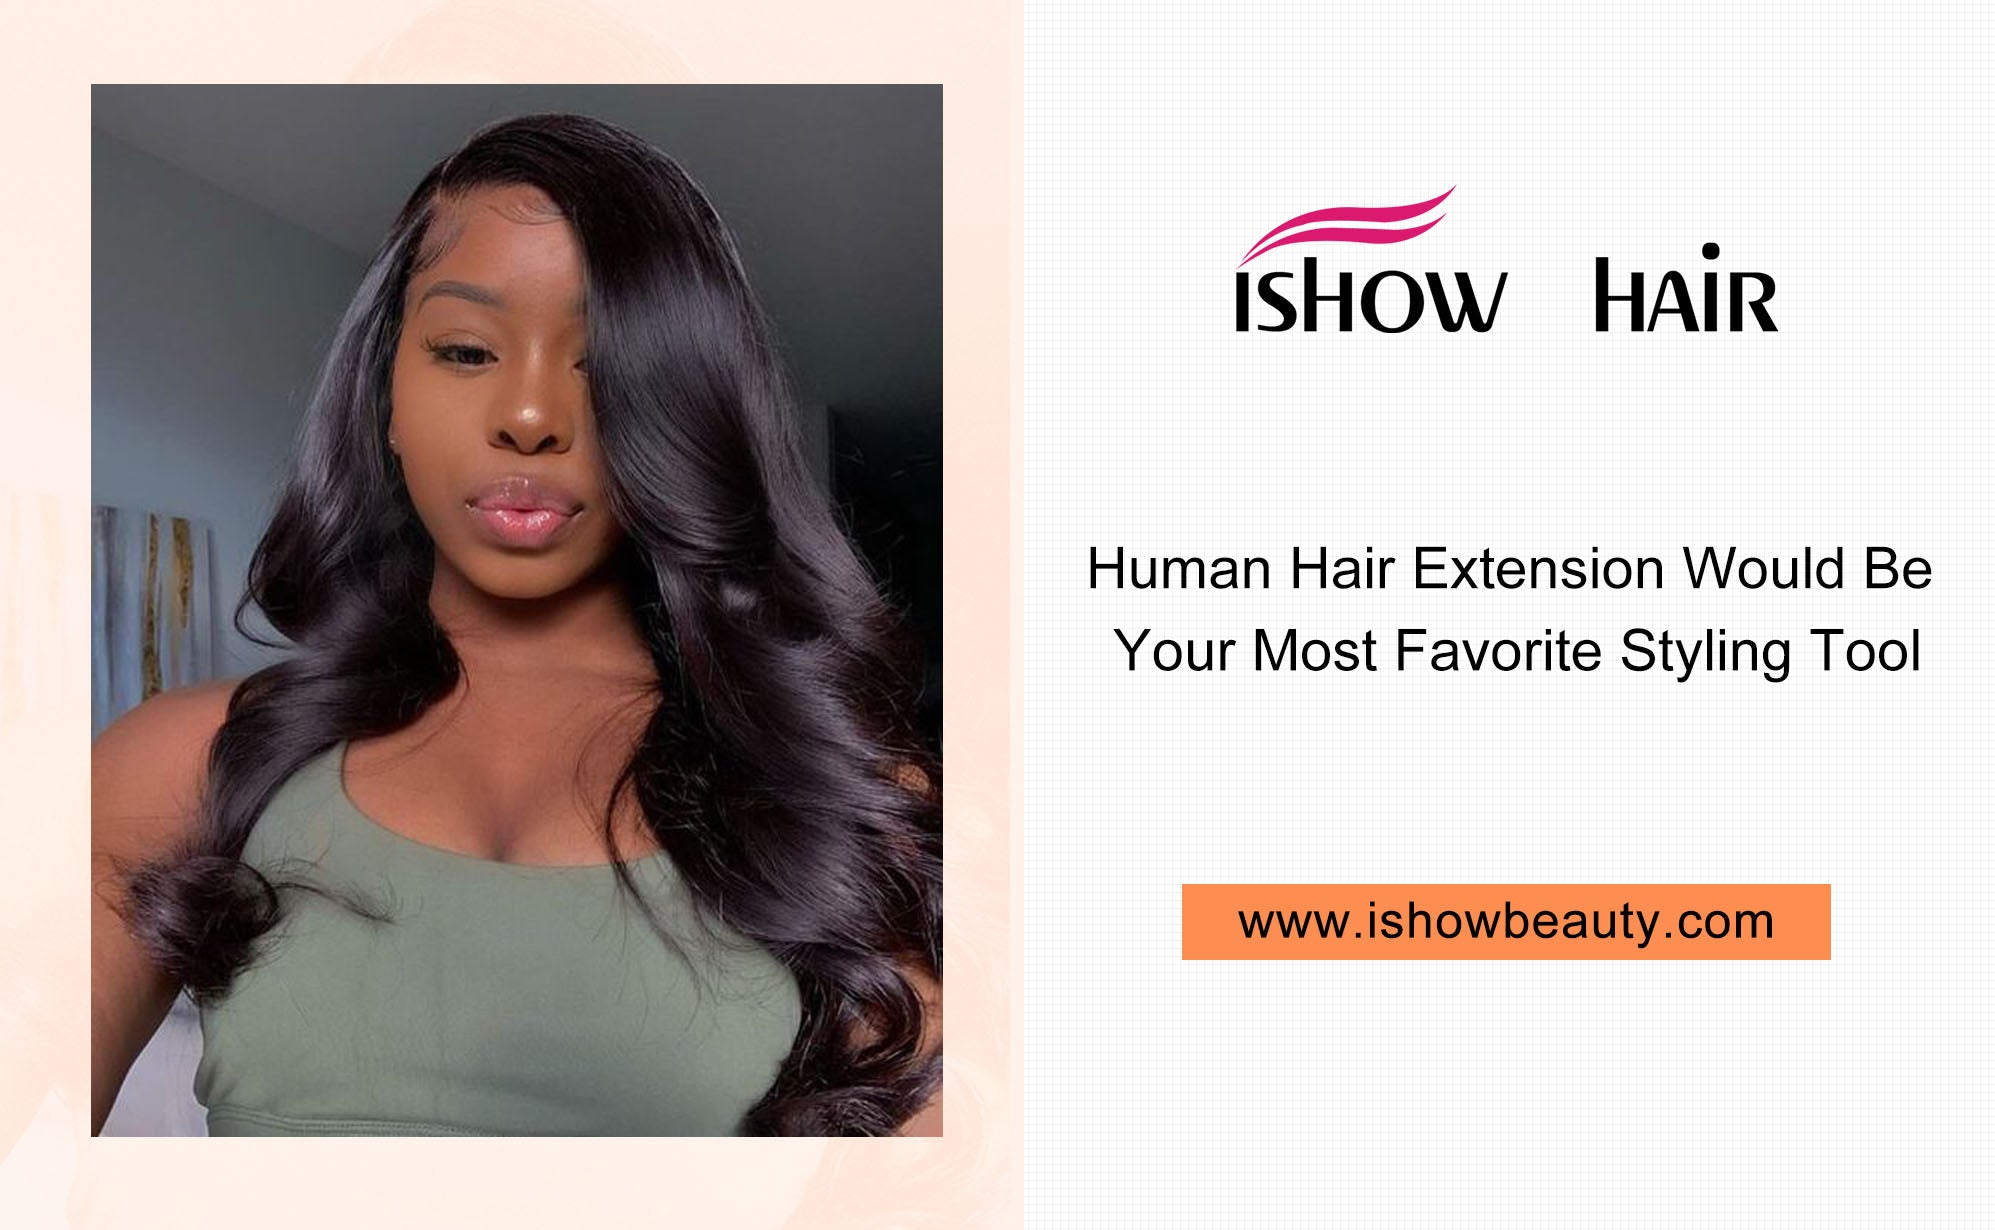 Human Hair Extension Would Be Your Most Favorite Styling Tool